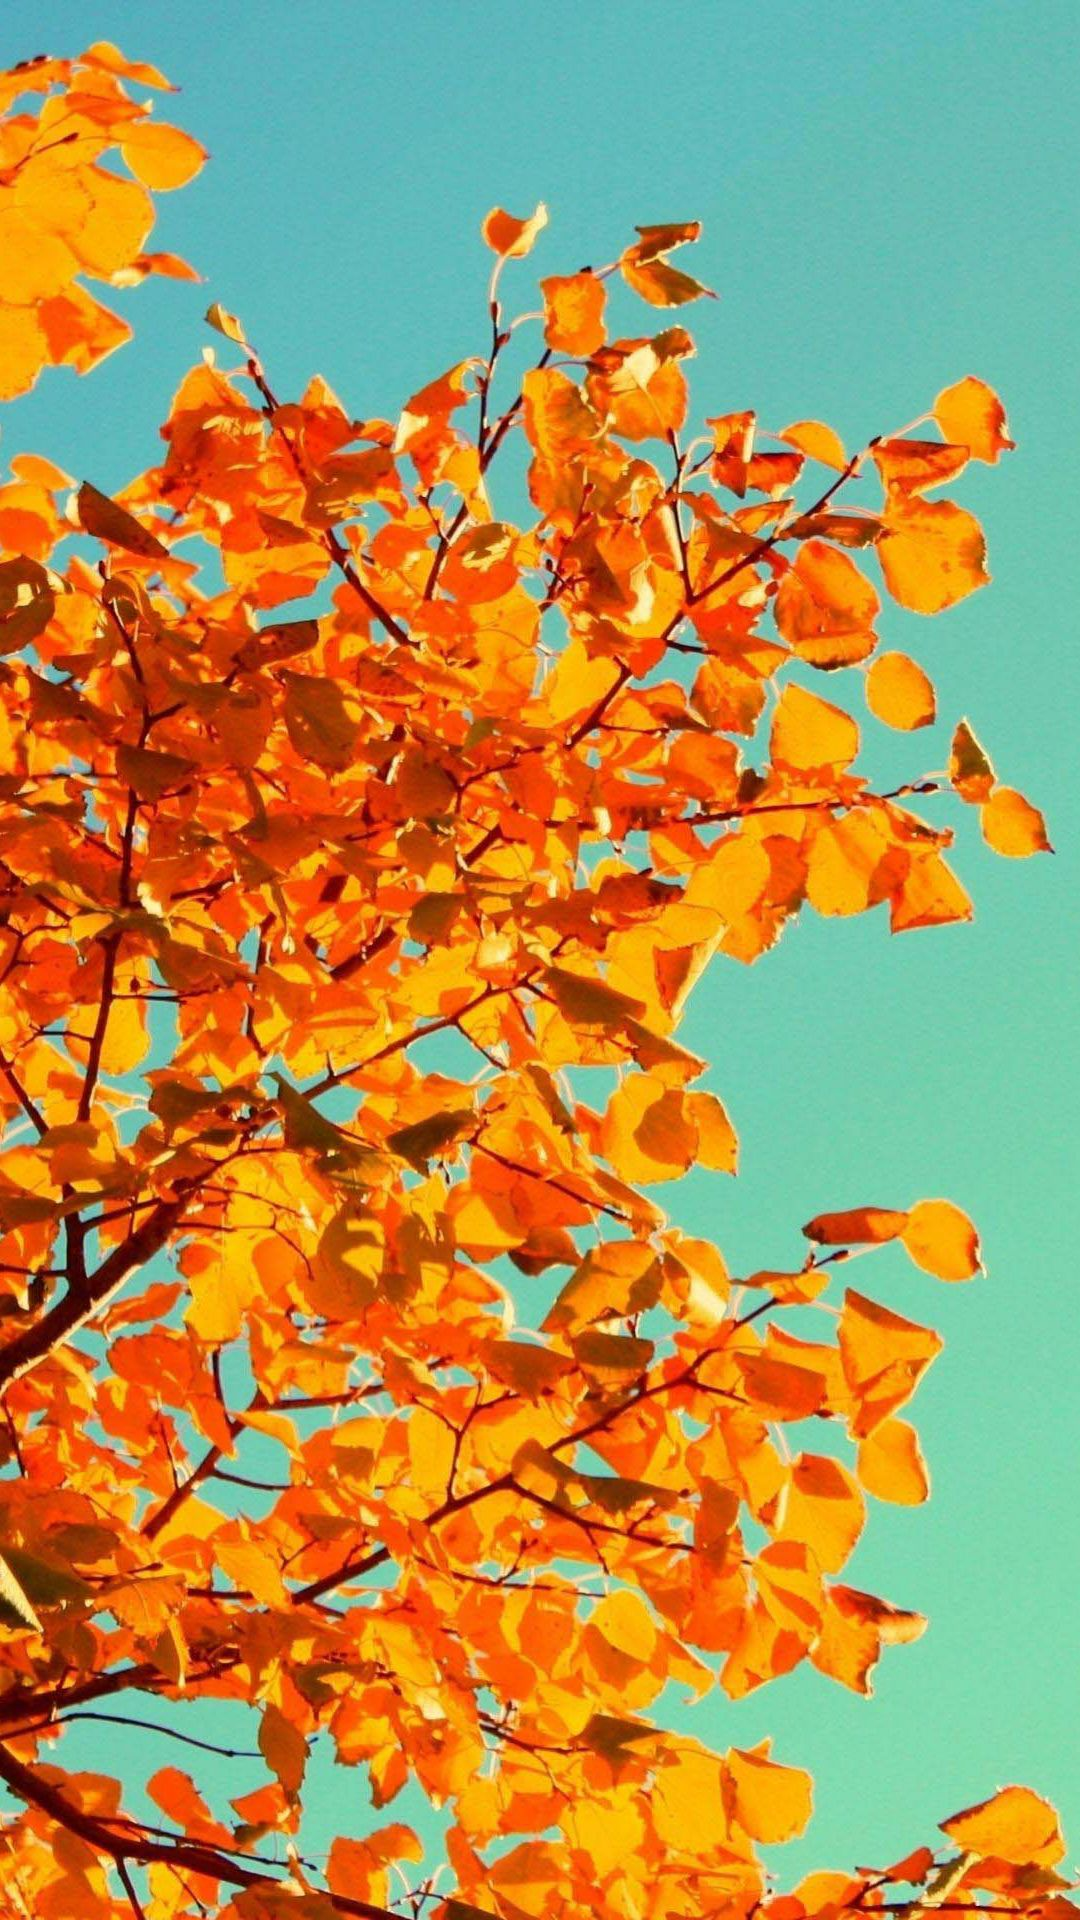 fall iphone wallpaper